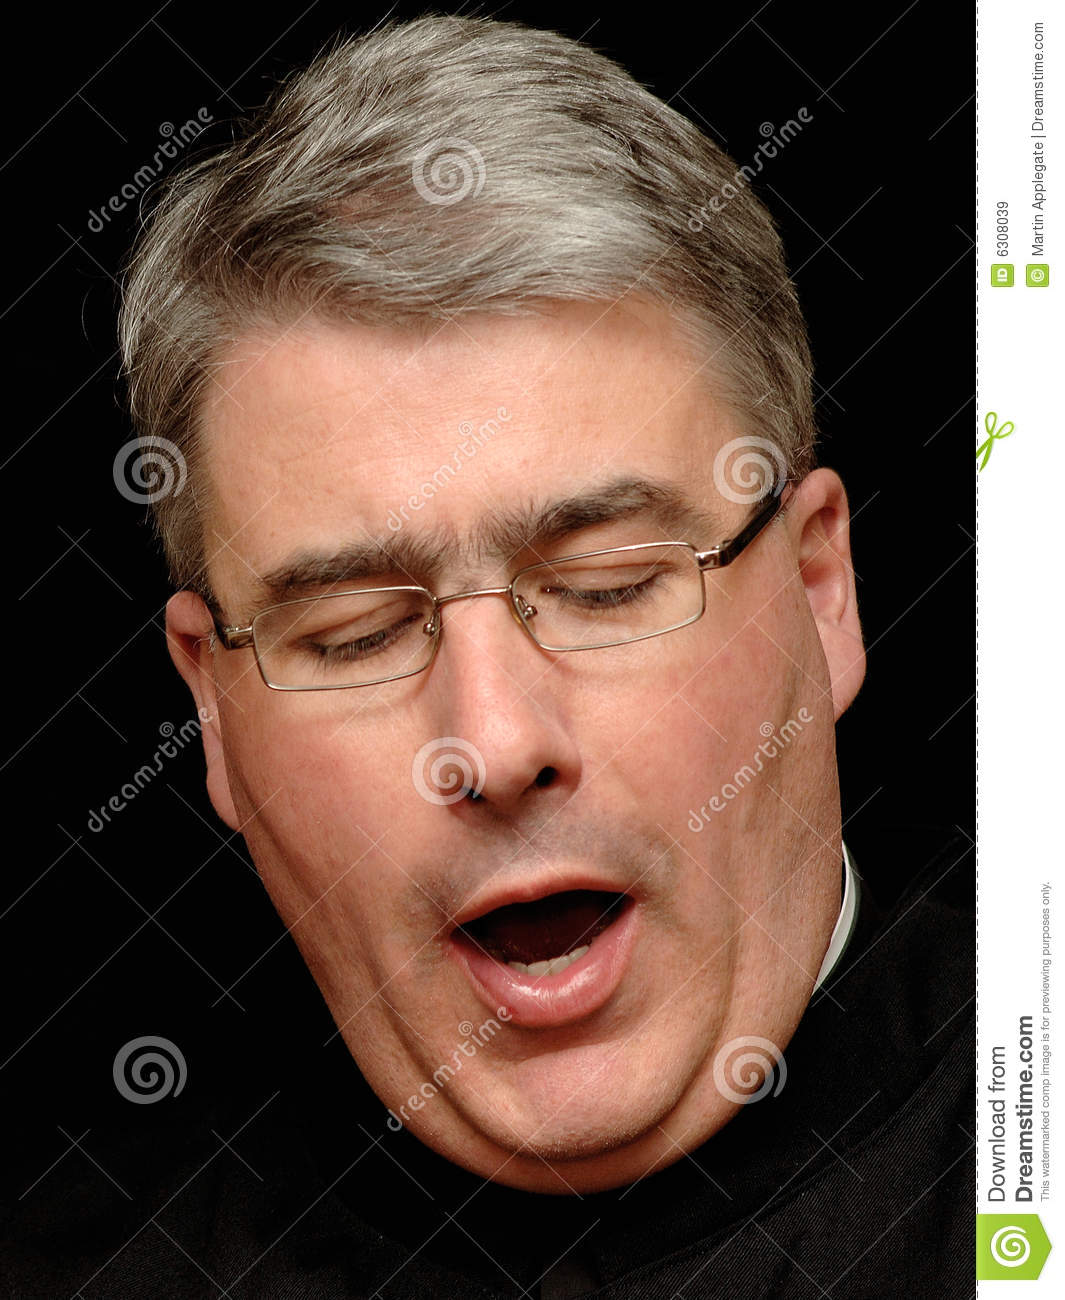 Yawning Priest Royalty Free Stock Images - Image: 6308039